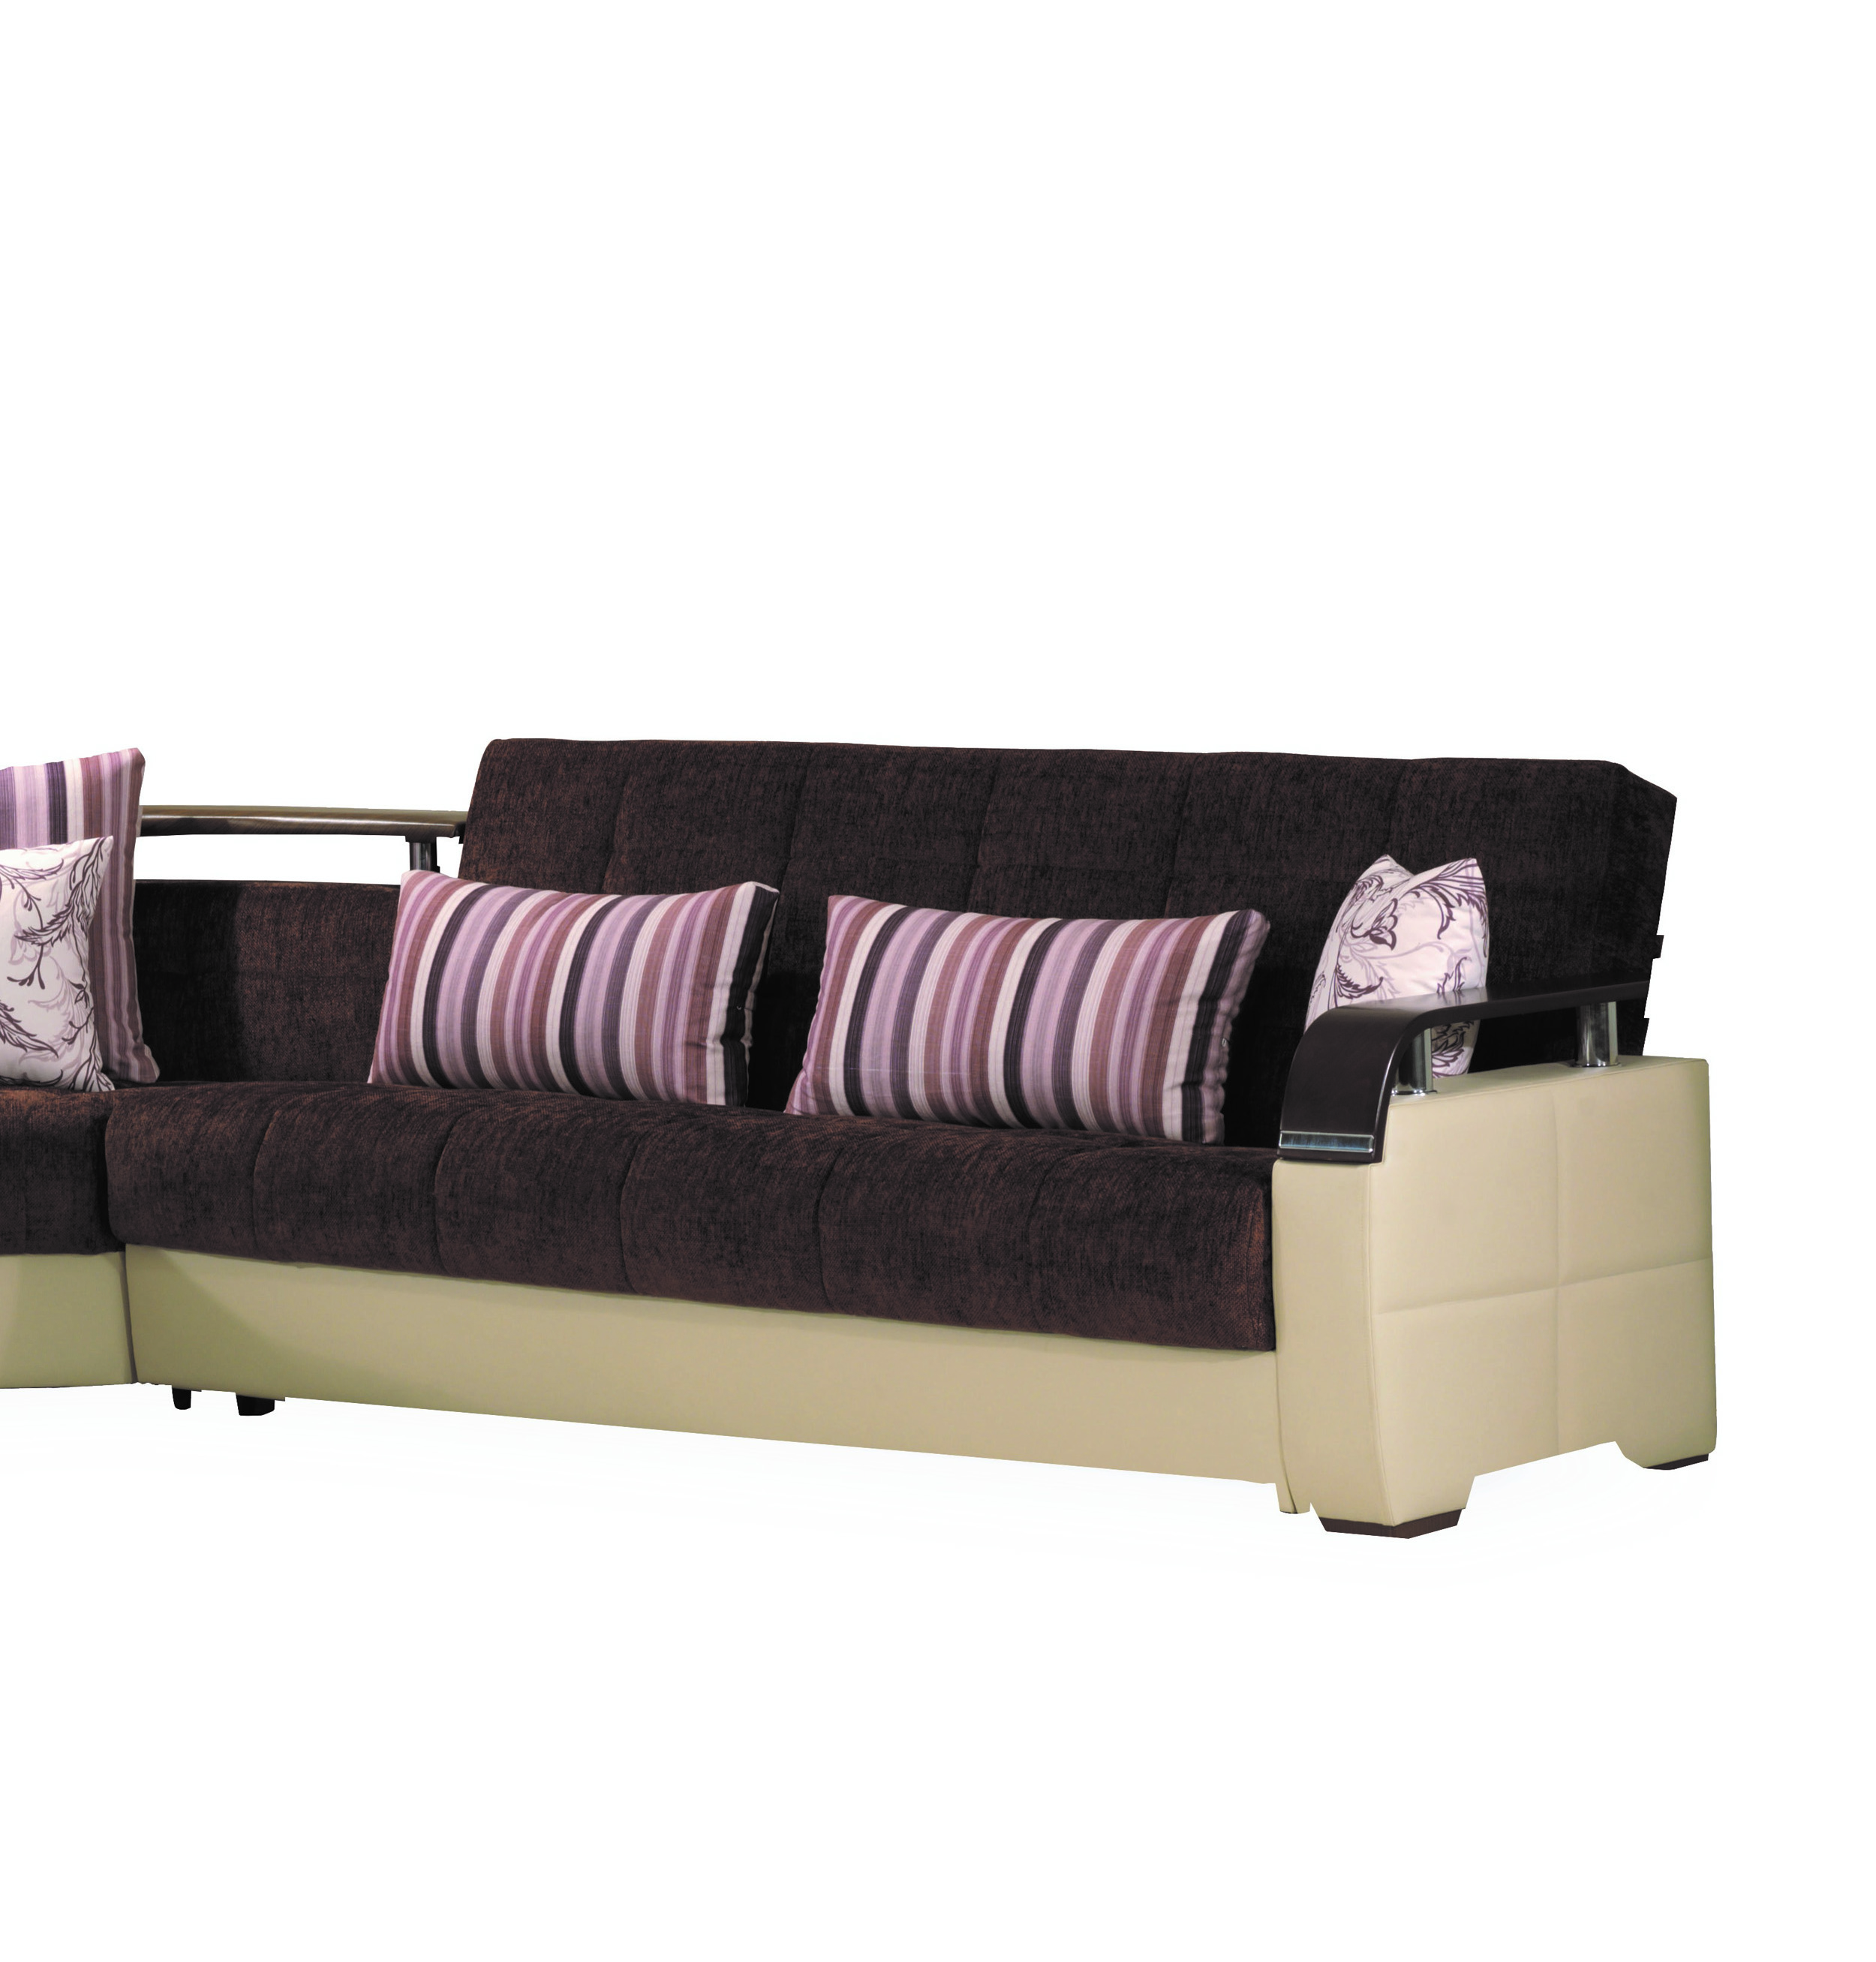 Casamode Karma Brown Cream Sofabed Click To Enlarge